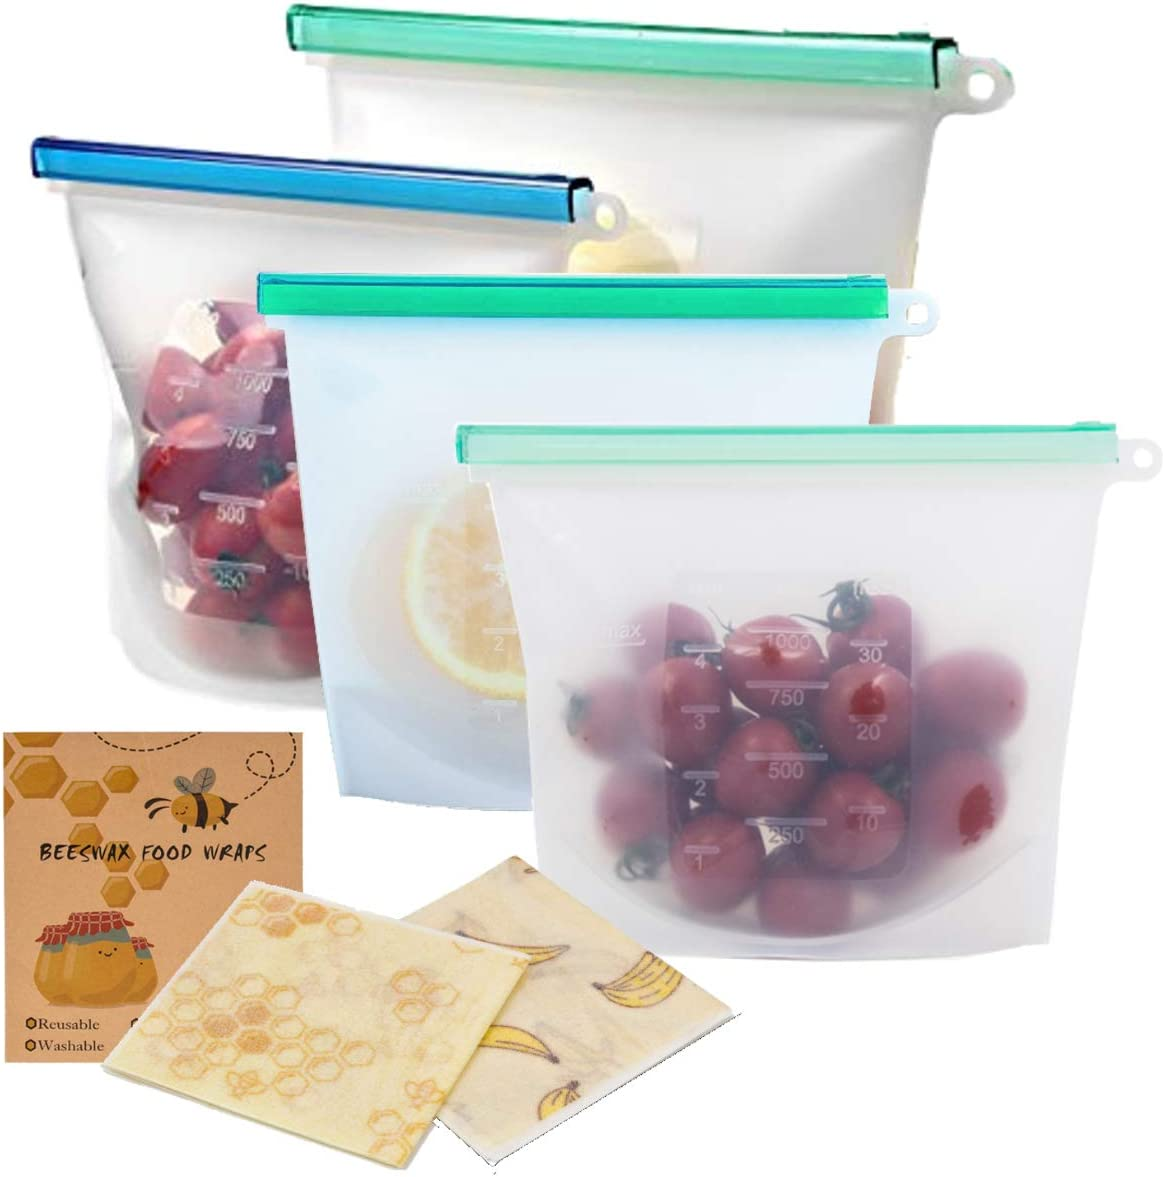 Silicone Reusable Storage Bags- BPA Free, Food-Grade, Leak Proof Food Storage. Ideal Snack, Lunch Bag, Sous Vide Container- Freezer, Microwave, Dishwasher Safe (1 Lrg, 3 Med) Beeswax Wrap (2) Included